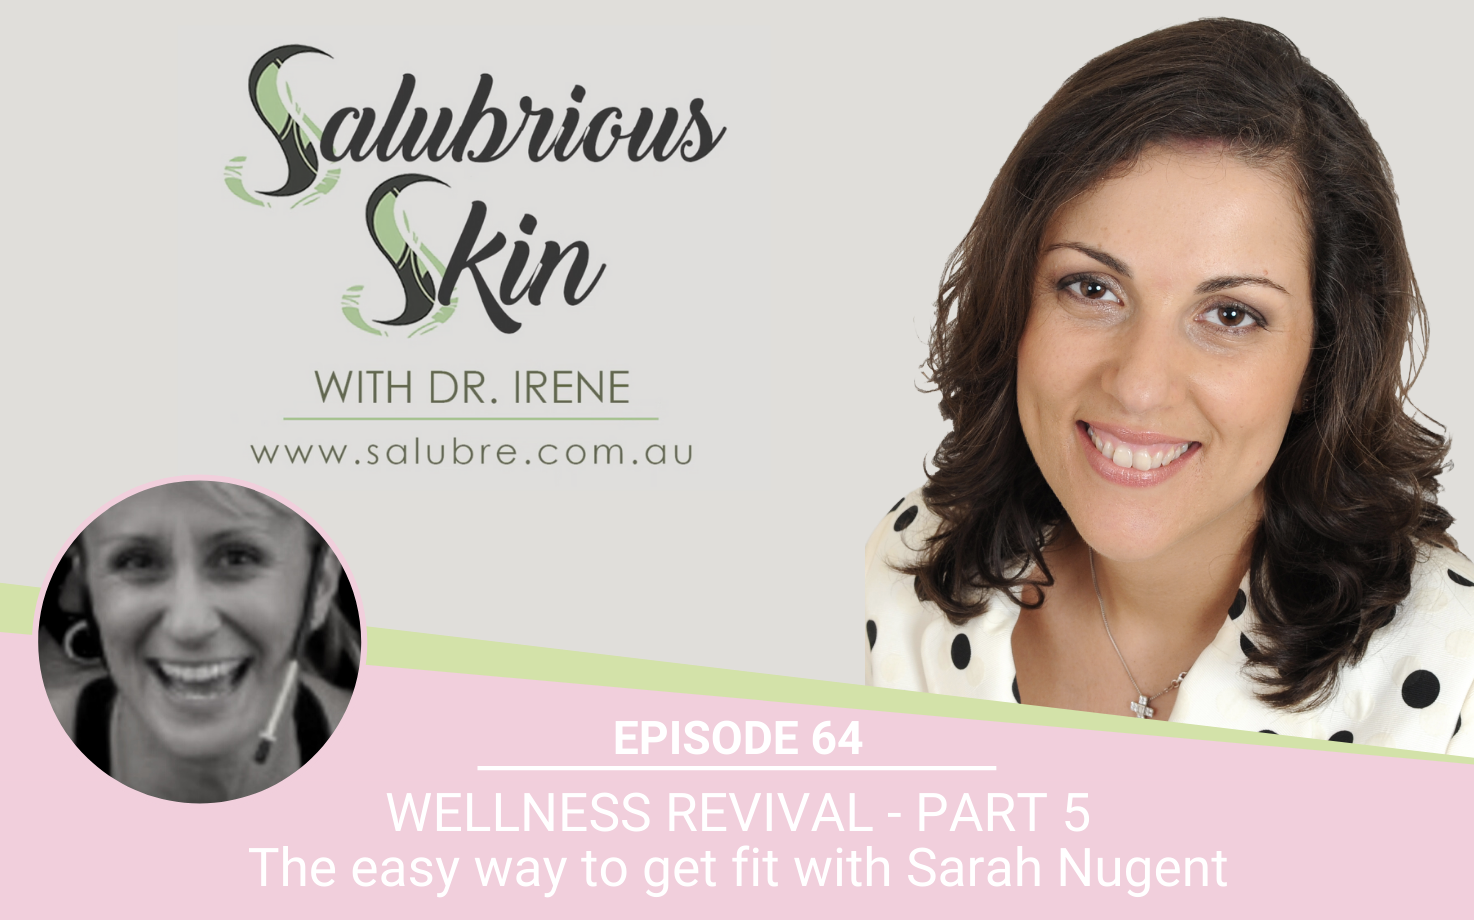 Podcast 64: Wellness Revival - Part 5: The easy way to get fit with Sarah Nugent